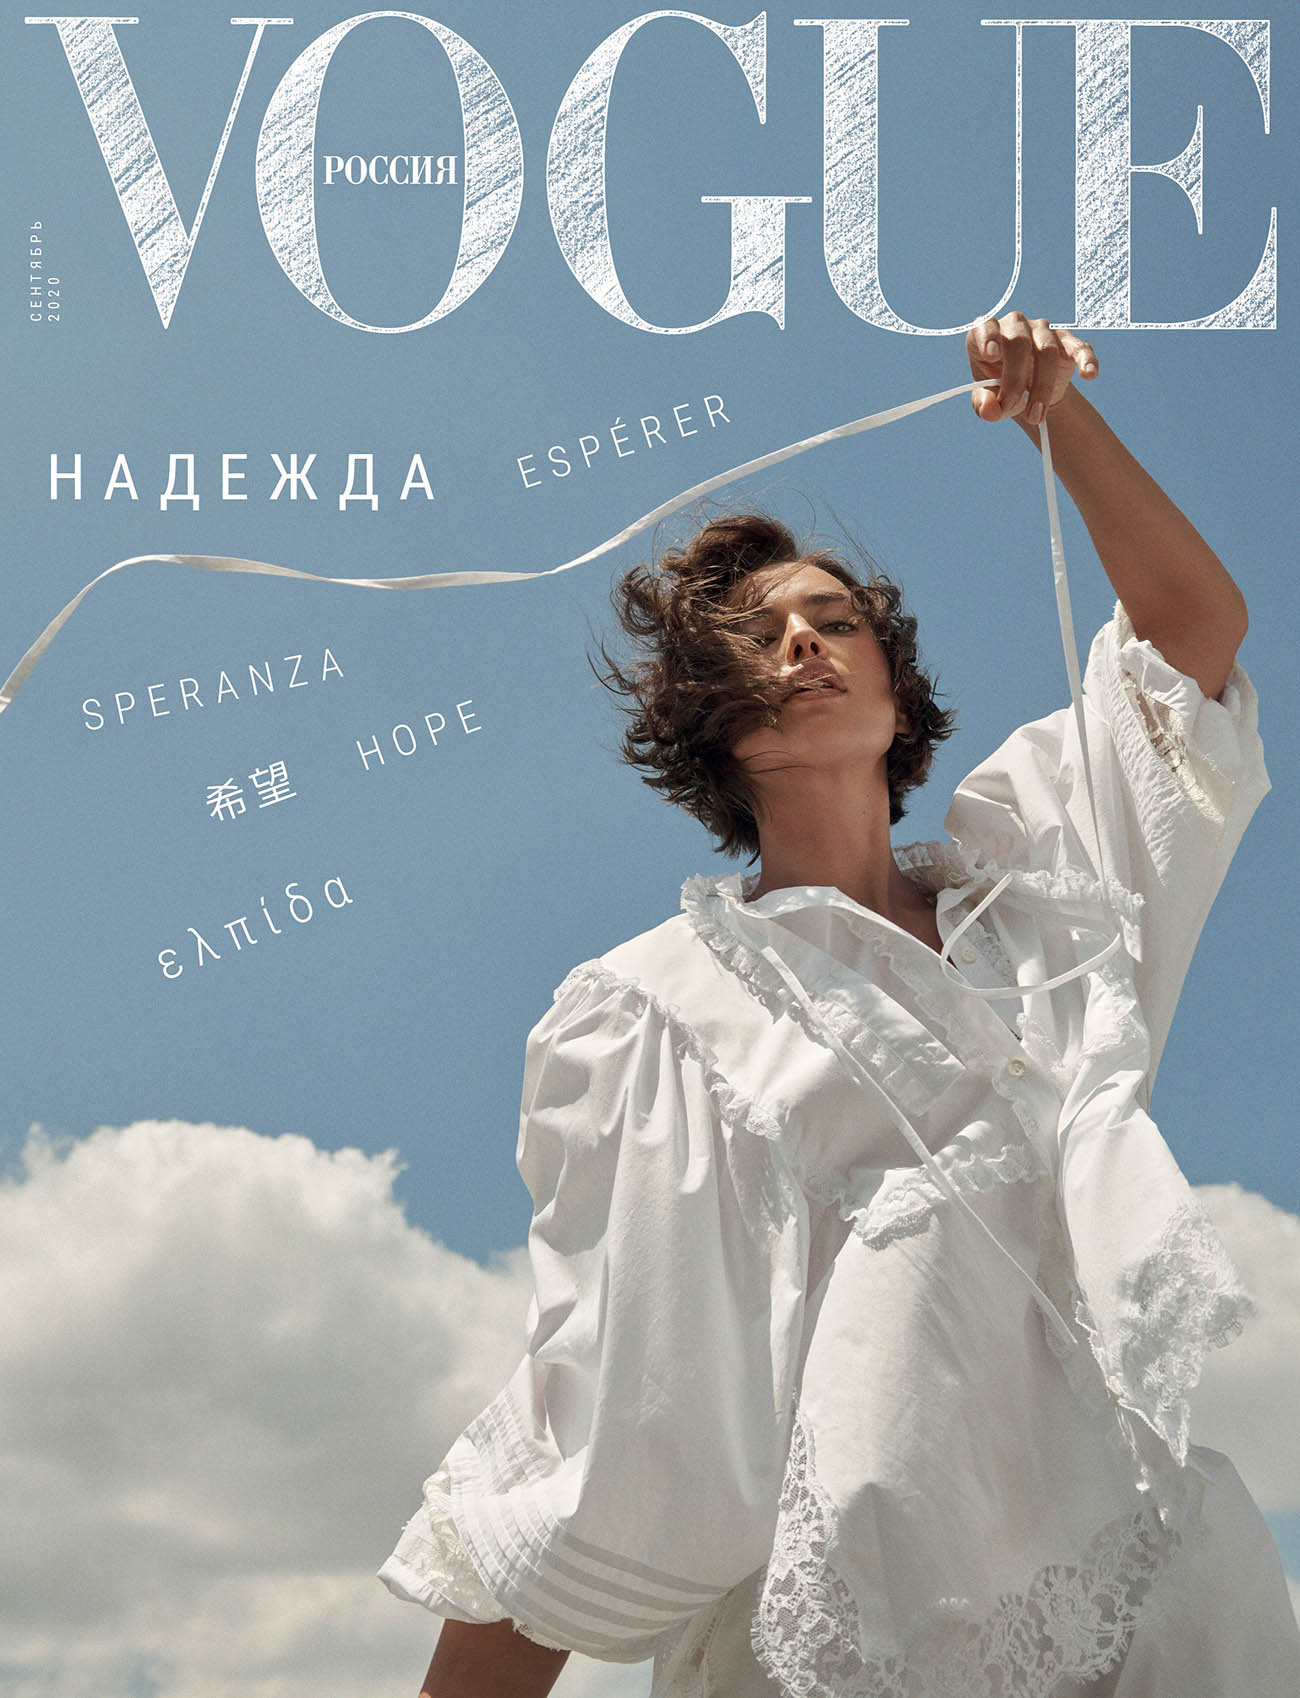 Irina Shayk covers Vogue Russia September 2020 by Paola Kudacki